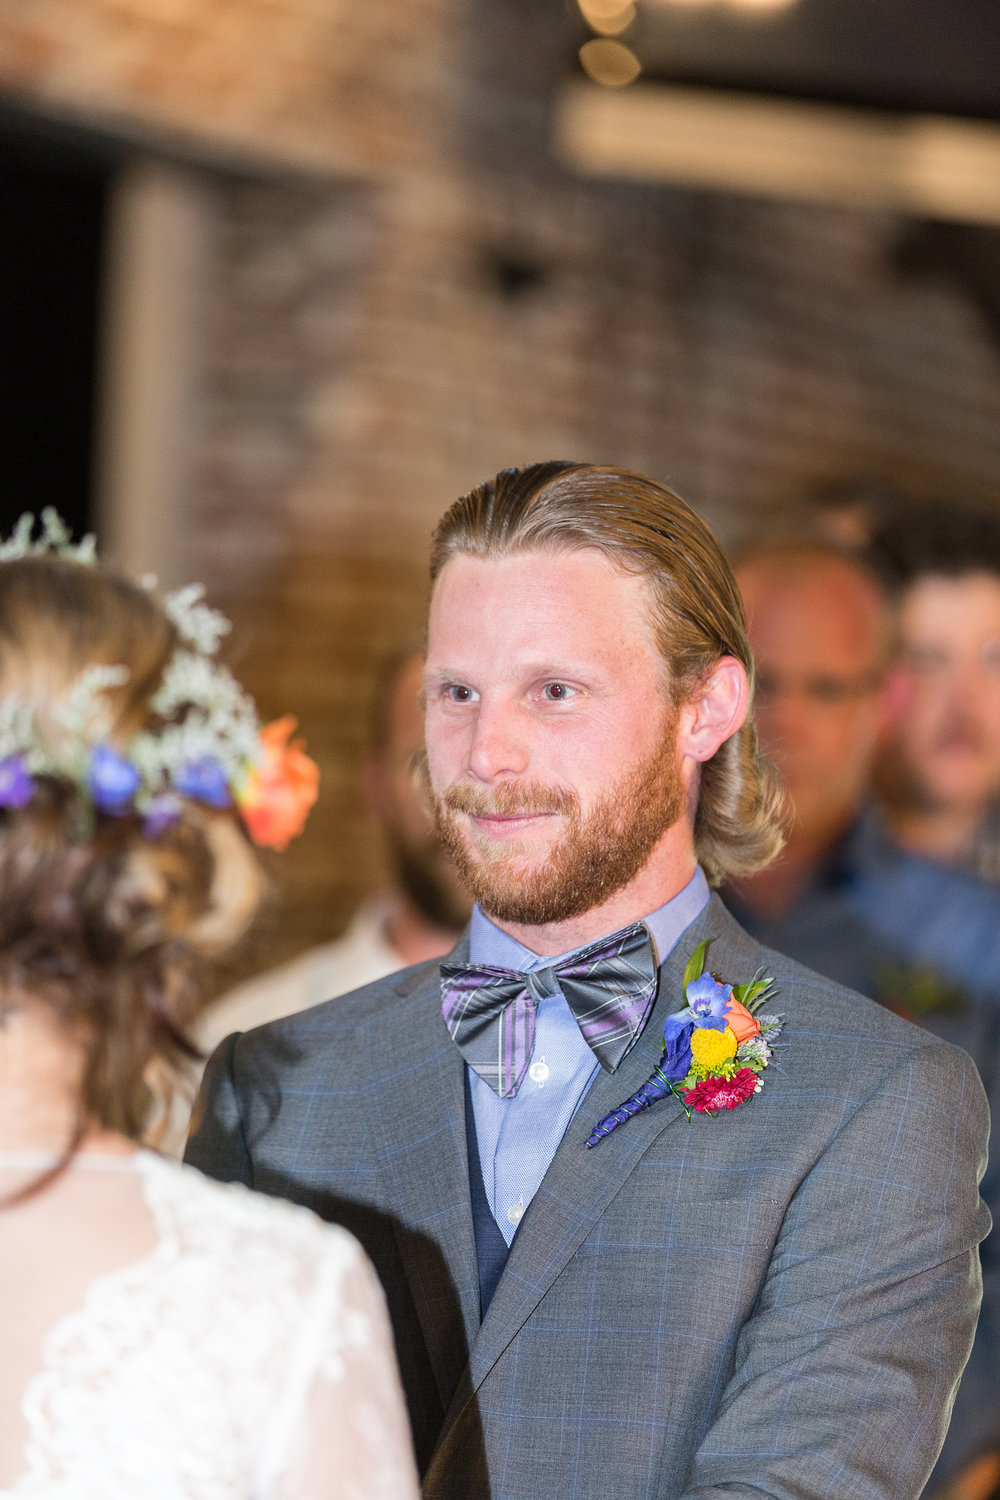 Blond-haired groom gazes at his bride during their wedding ceremony in June in Colorado.